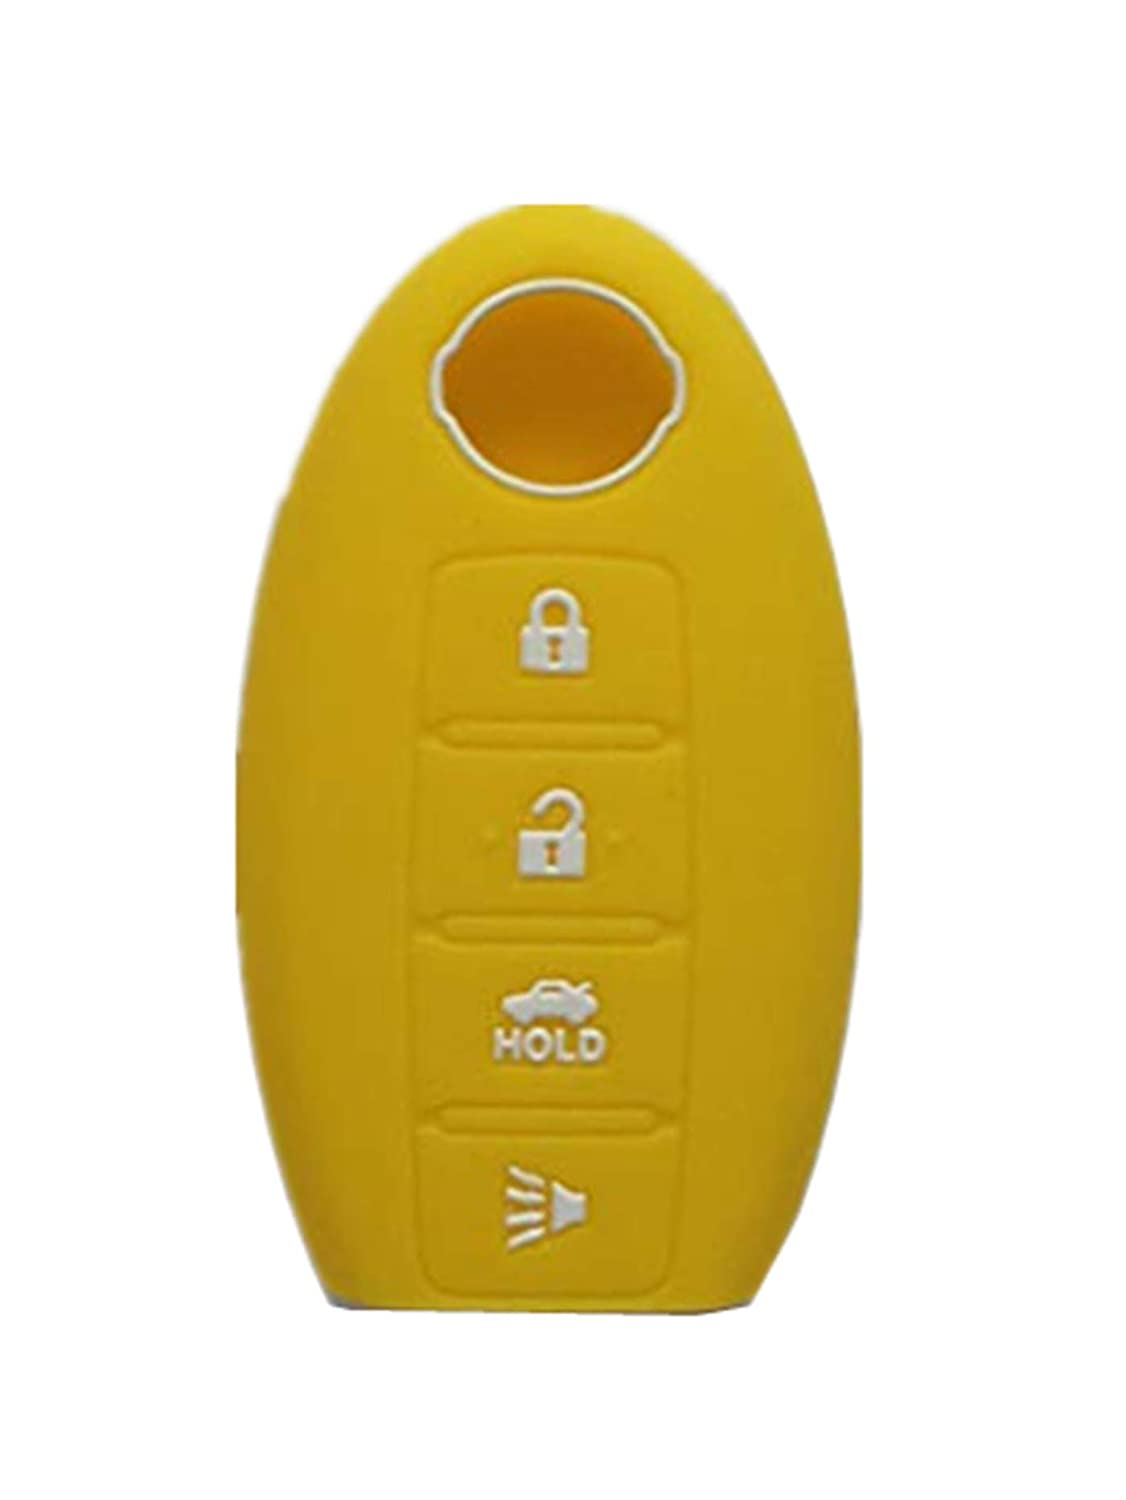 Rpkey Silicone Keyless Entry Remote Control Key Fob Cover Case protector For Nissan Altima Maxima Murano Versa 285E3-JA05A KR55WK48903(yellow)